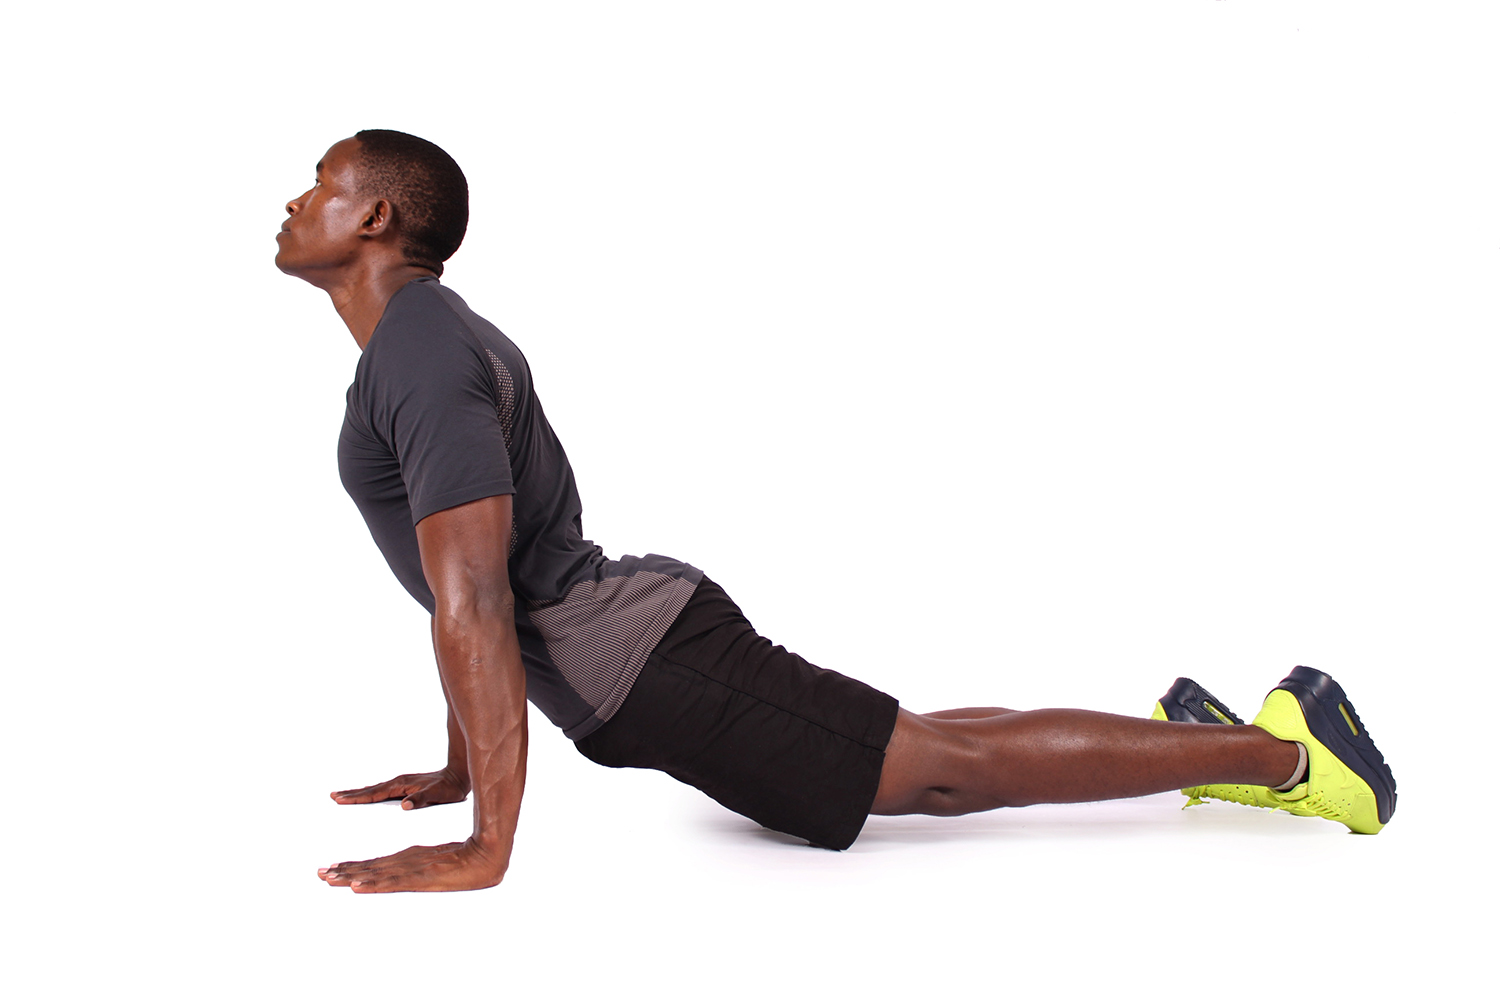 Muscular man doing divebomber push ups and yoga pose high quality free stock images - Dive bomber push up ...